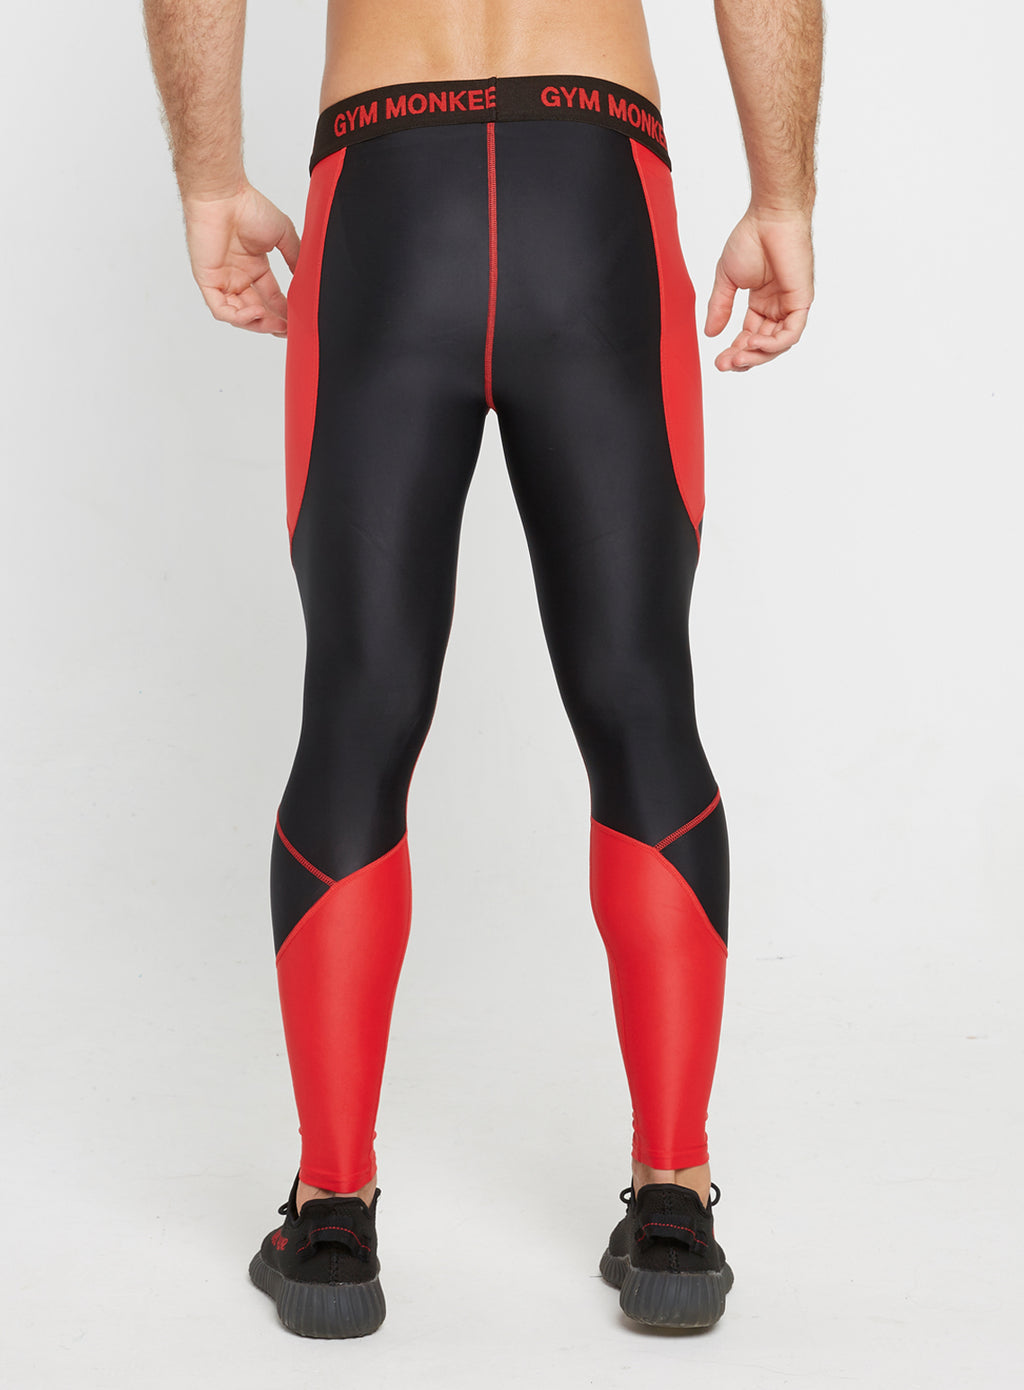 Gym Monkee - Black and Red Leggings REAR